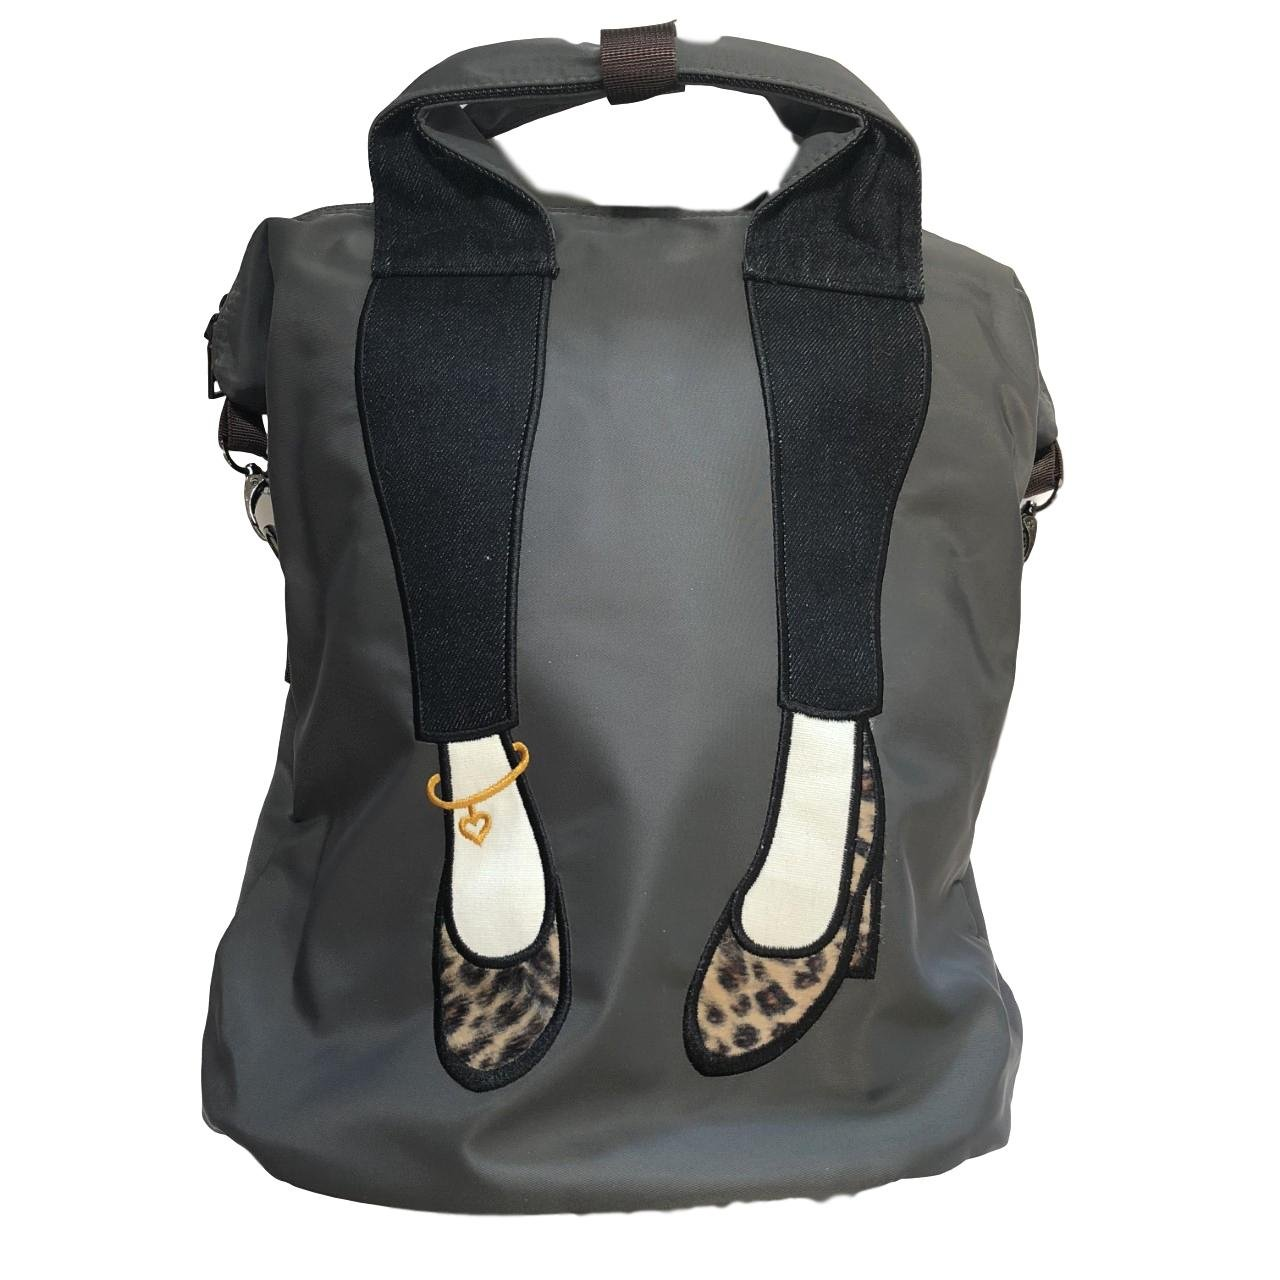 Love My Shoes Trendy Leopard Shoe Laptop Backpack Travel Bag by Ufind (Image #1)